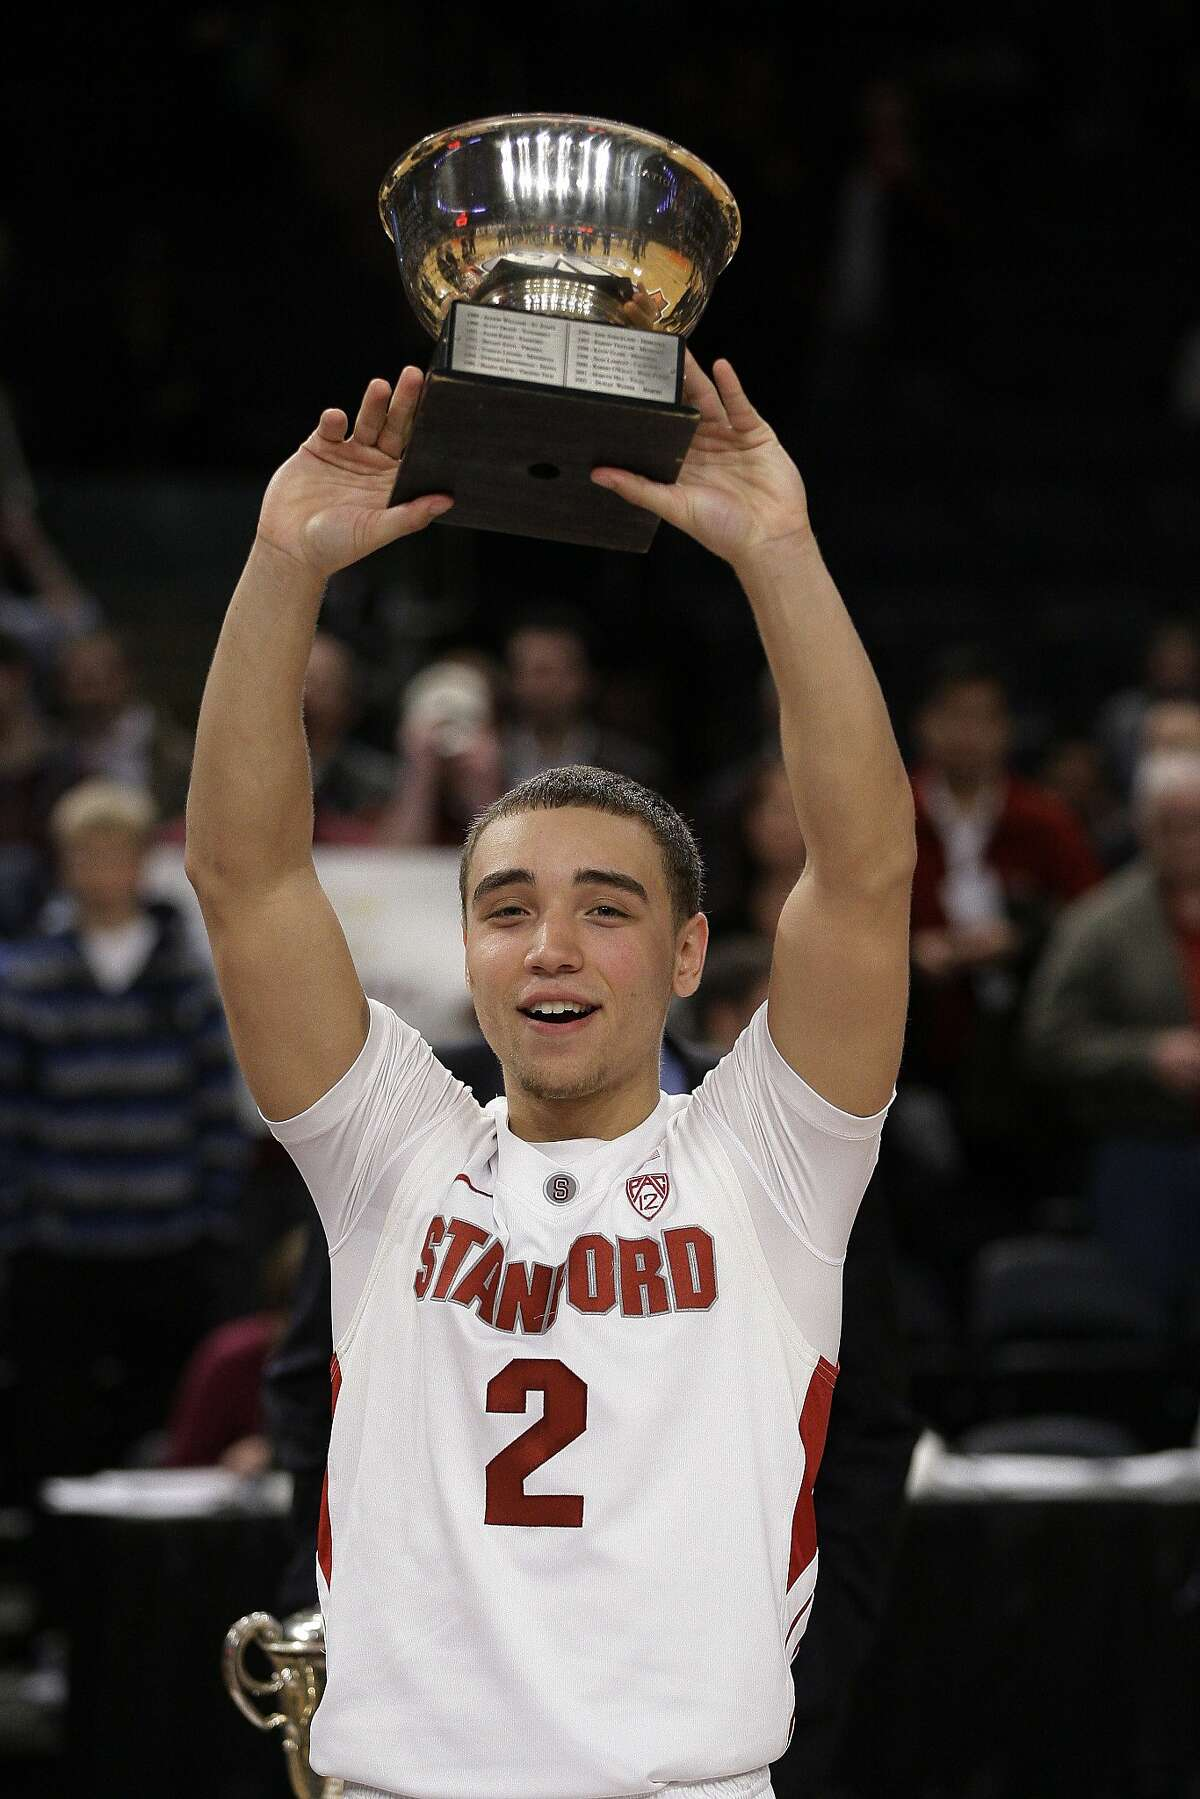 Stanford's Aaron Bright poses for photographs with the Most Outstanding Player trophy during the second half of the NIT college basketball tournament final against Minnesota, Thursday, March 29, 2012, in New York. Stanford won the game 75-51. (AP Photo/Frank Franklin II)